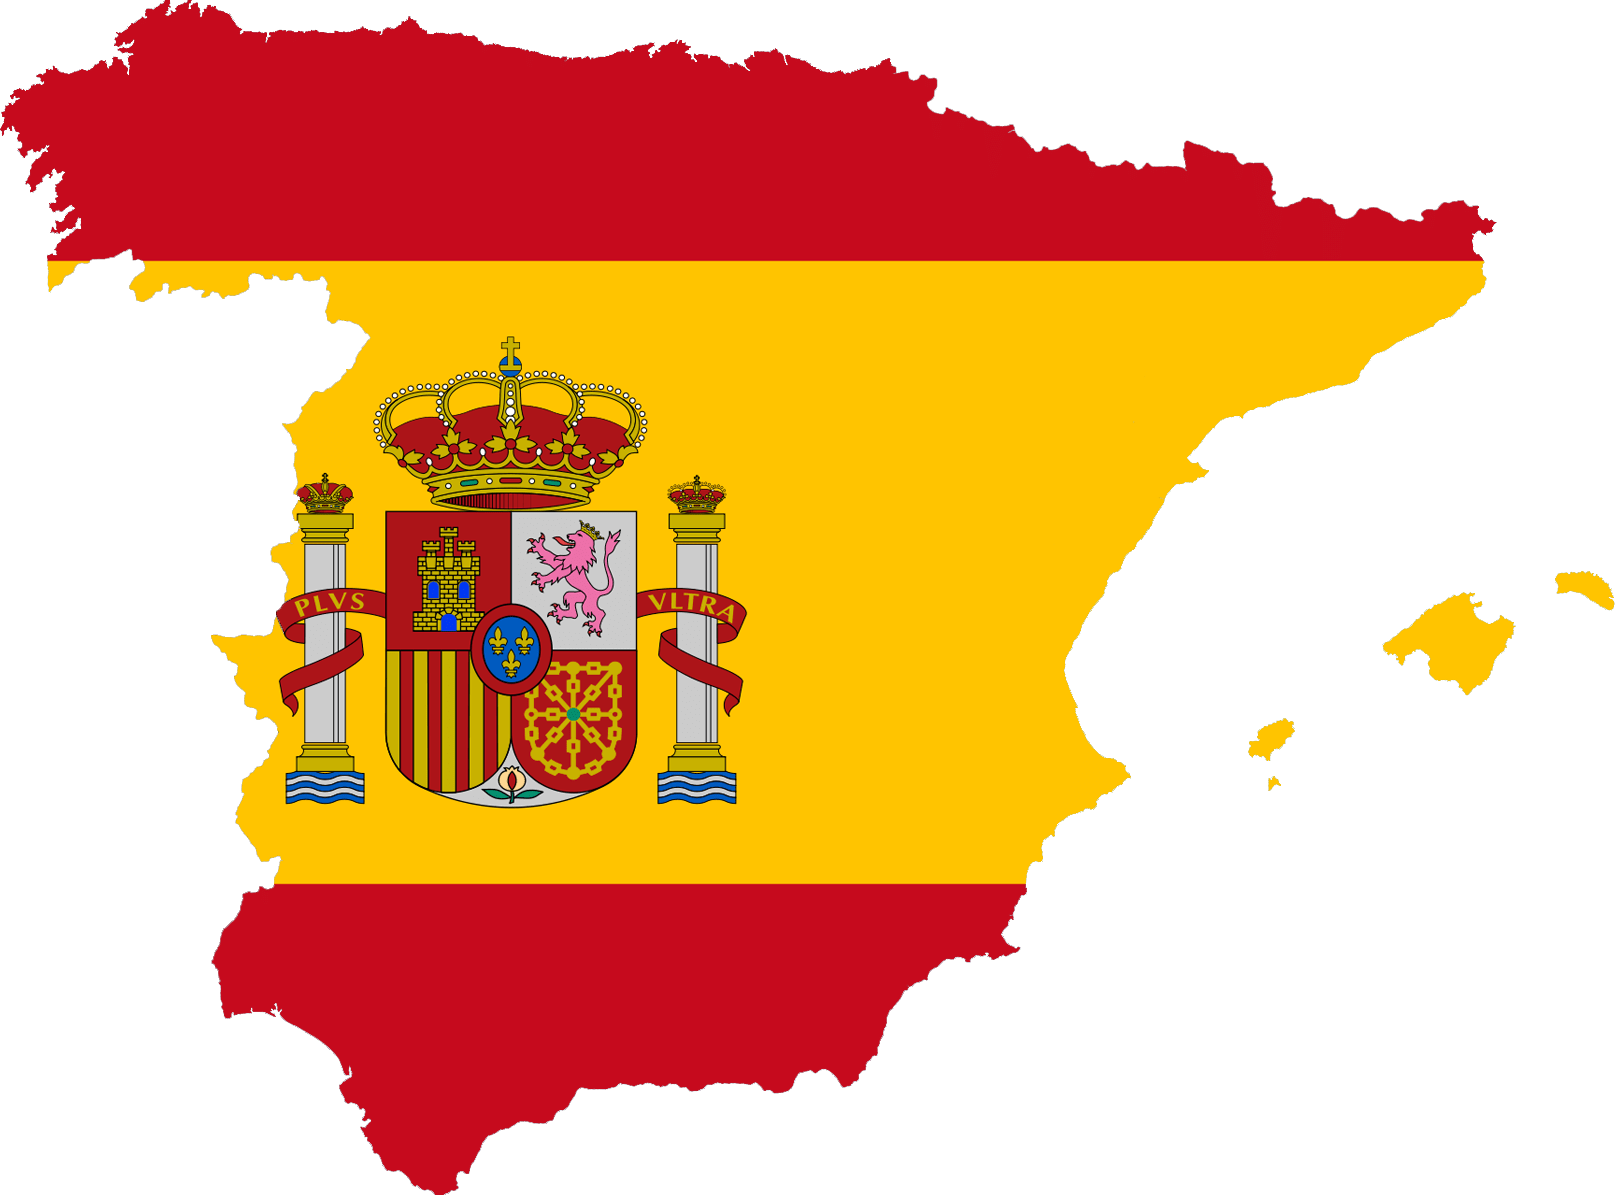 In The European Continent Spain